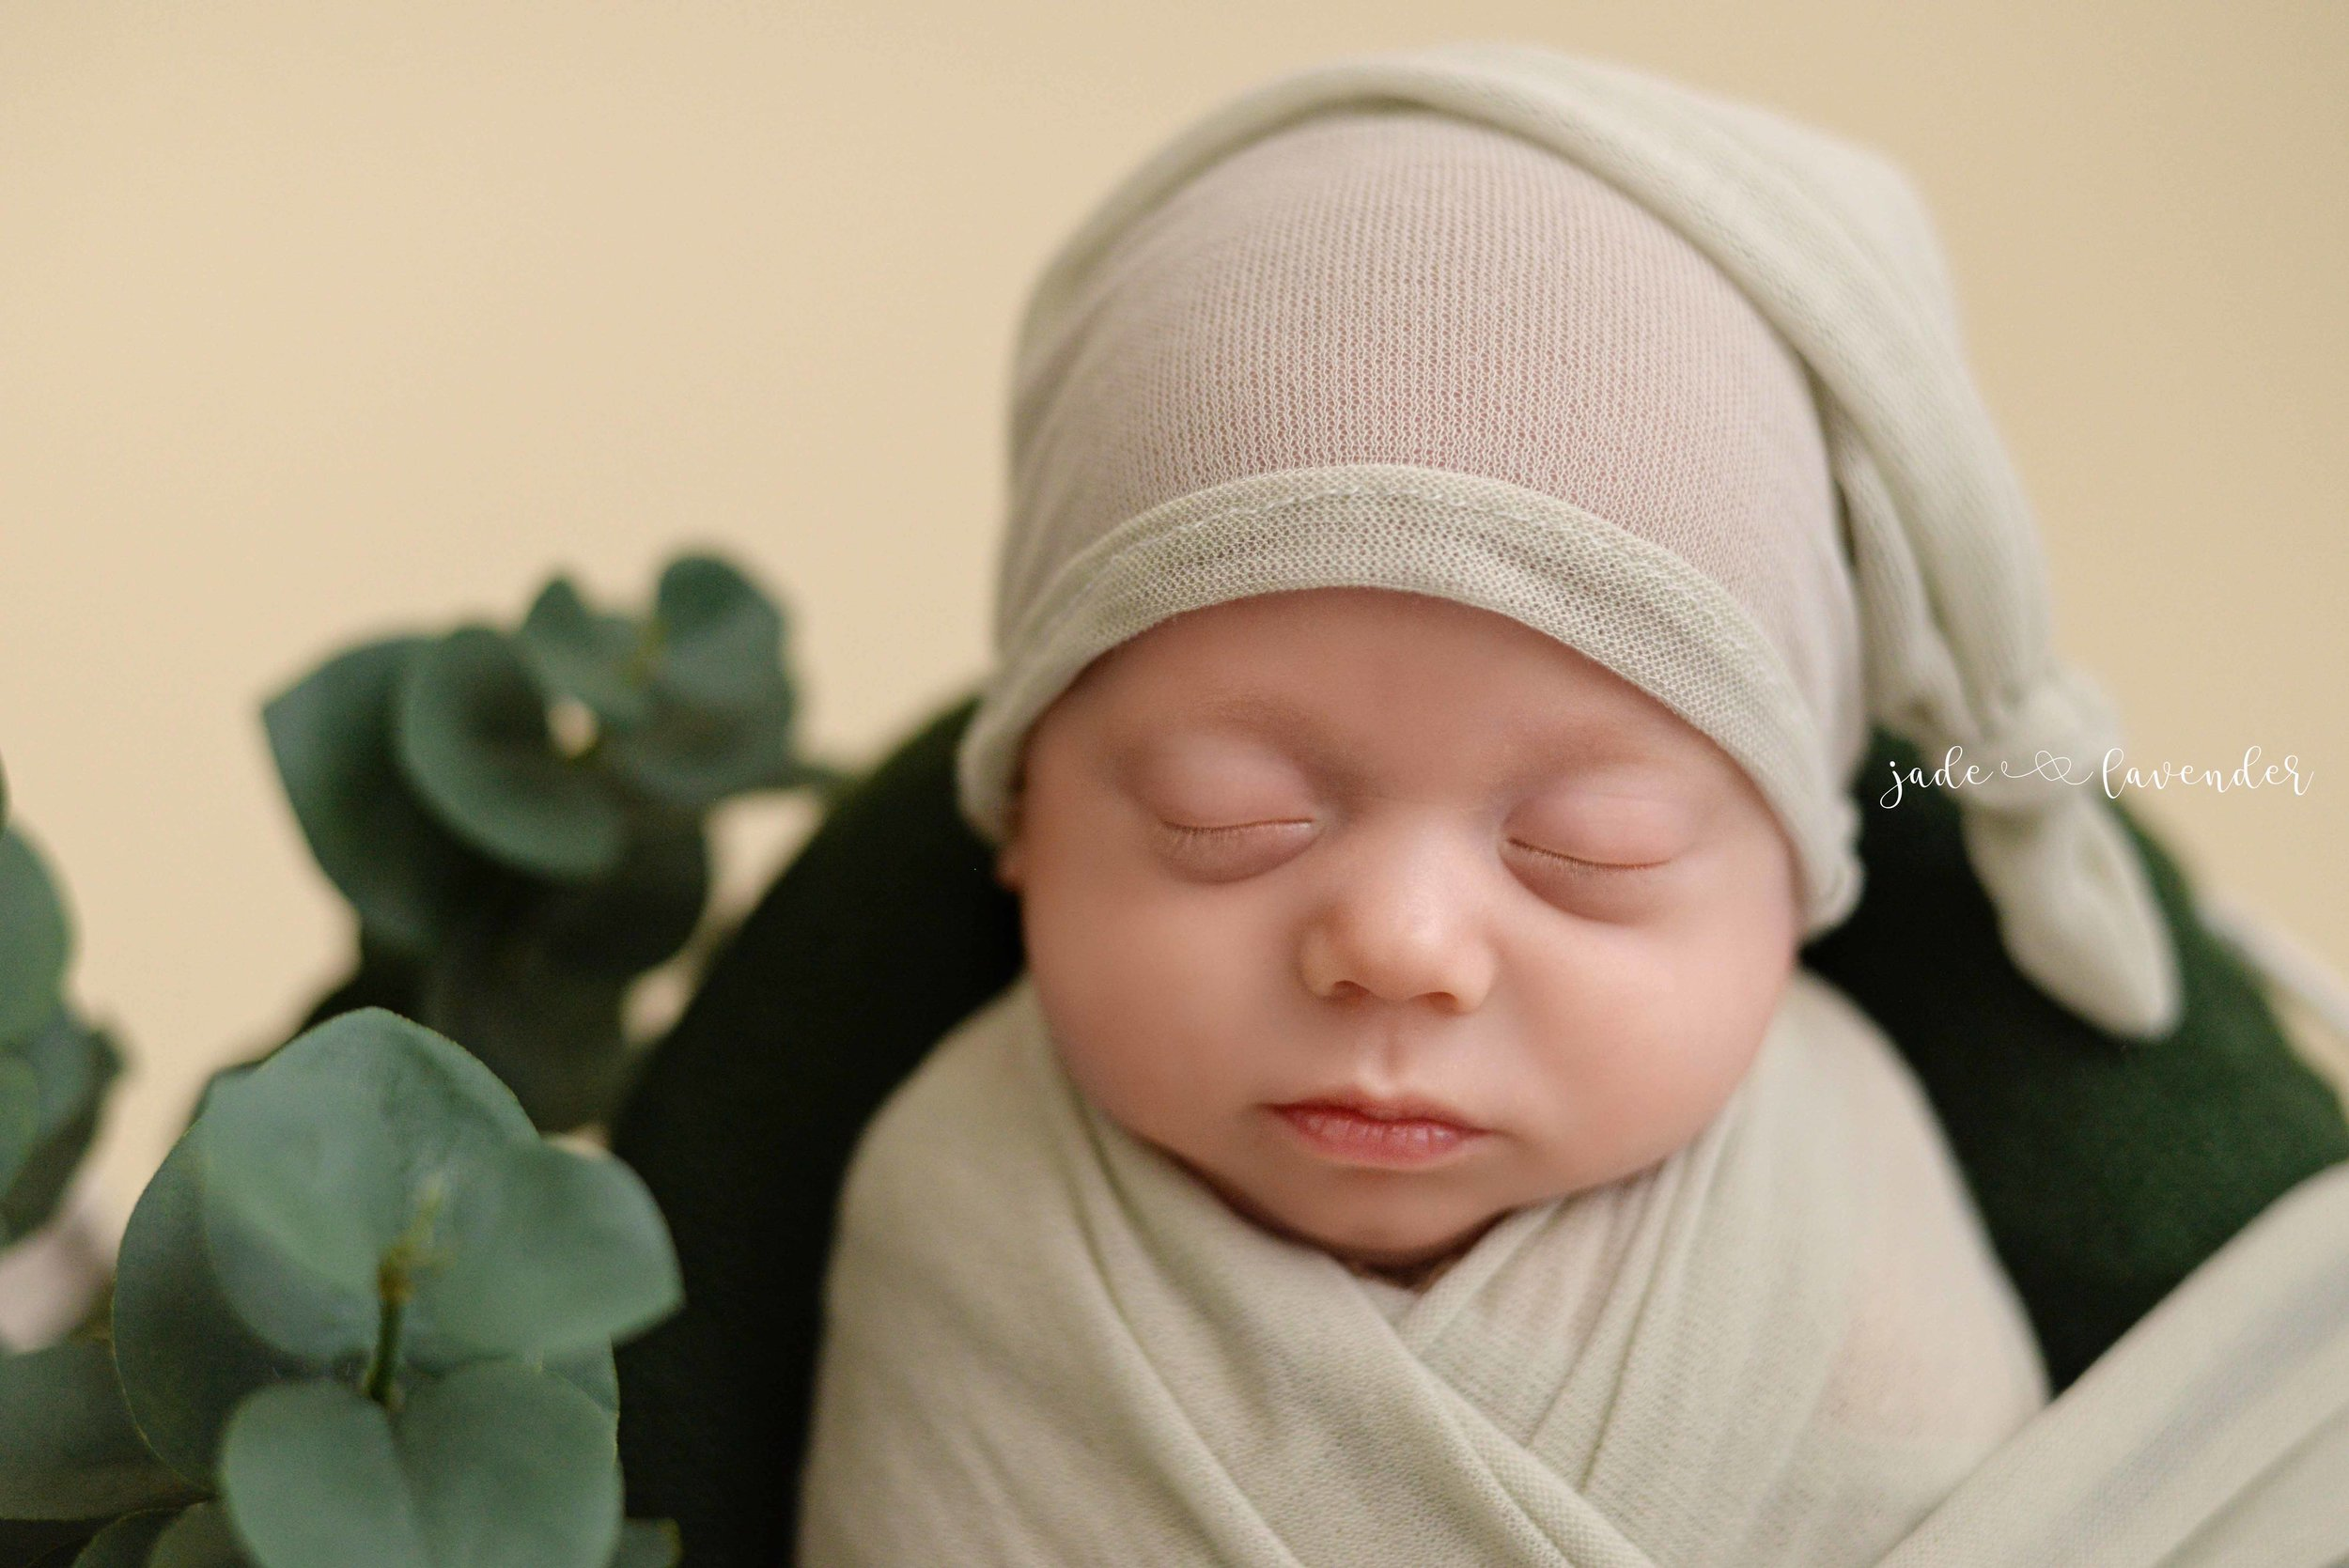 amazing-baby-photography-local-newborn-photos-spokane-washington.jpg